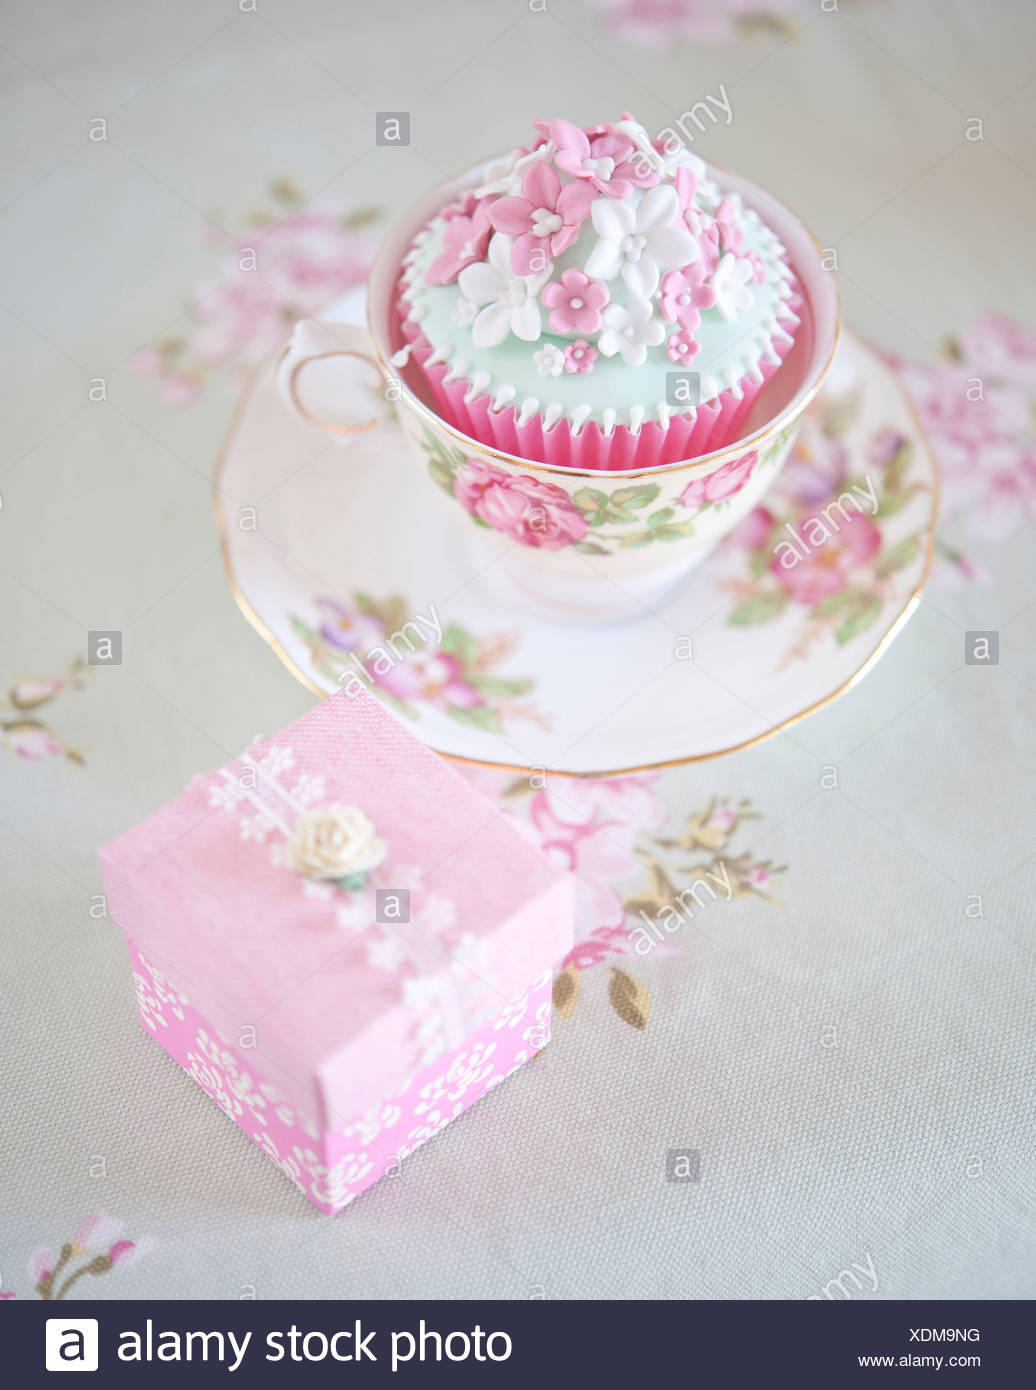 A Floral China Cup Saucer And Plate With Iced Cupcake And Cake Box Stock Photo Alamy